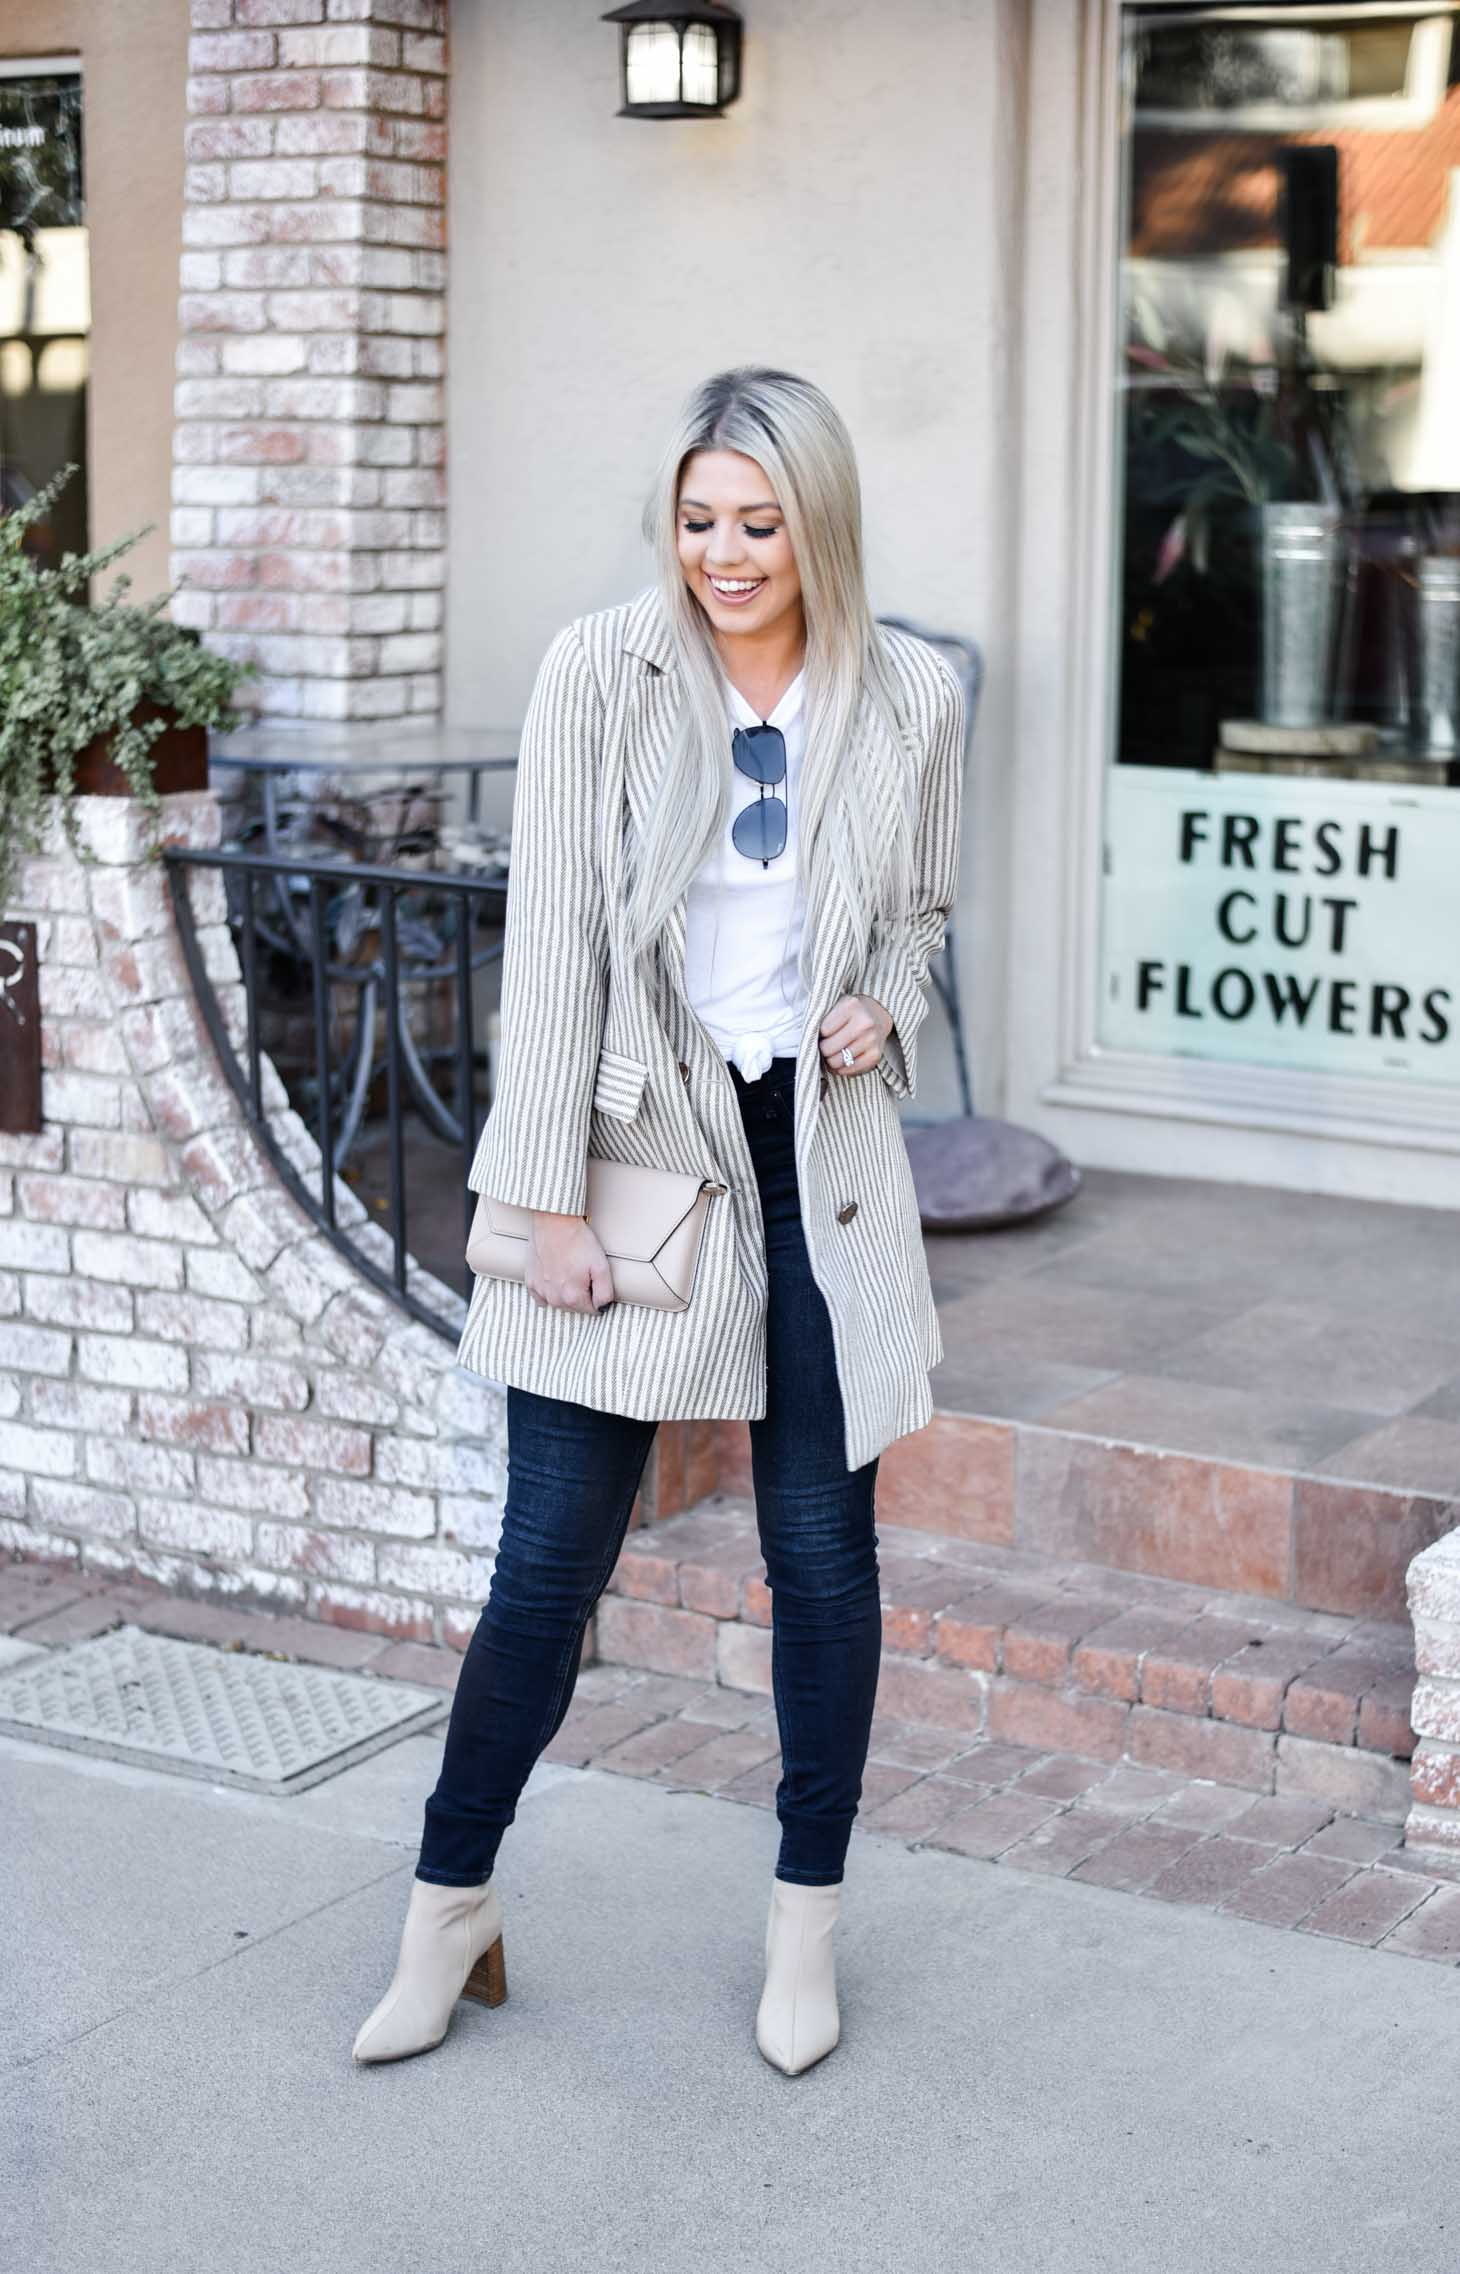 Erin Elizabeth of Wink and a Twirl shares the perfect oversized blazer from Chicwish